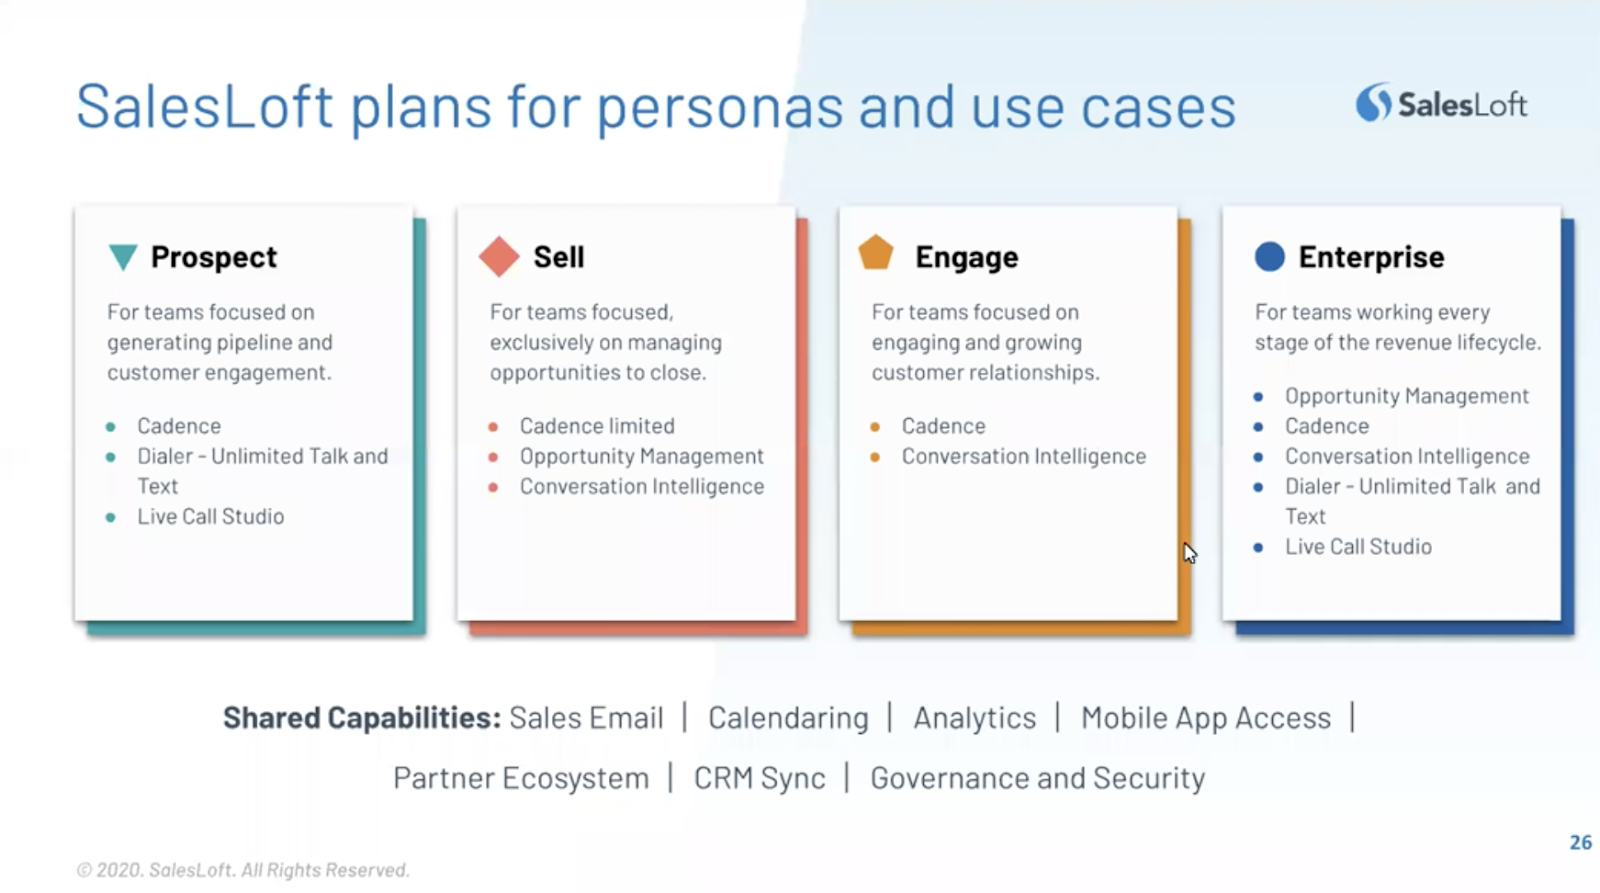 SalesLoft plans for personas and use cases: Prospect, sell, engage, entrerprise.